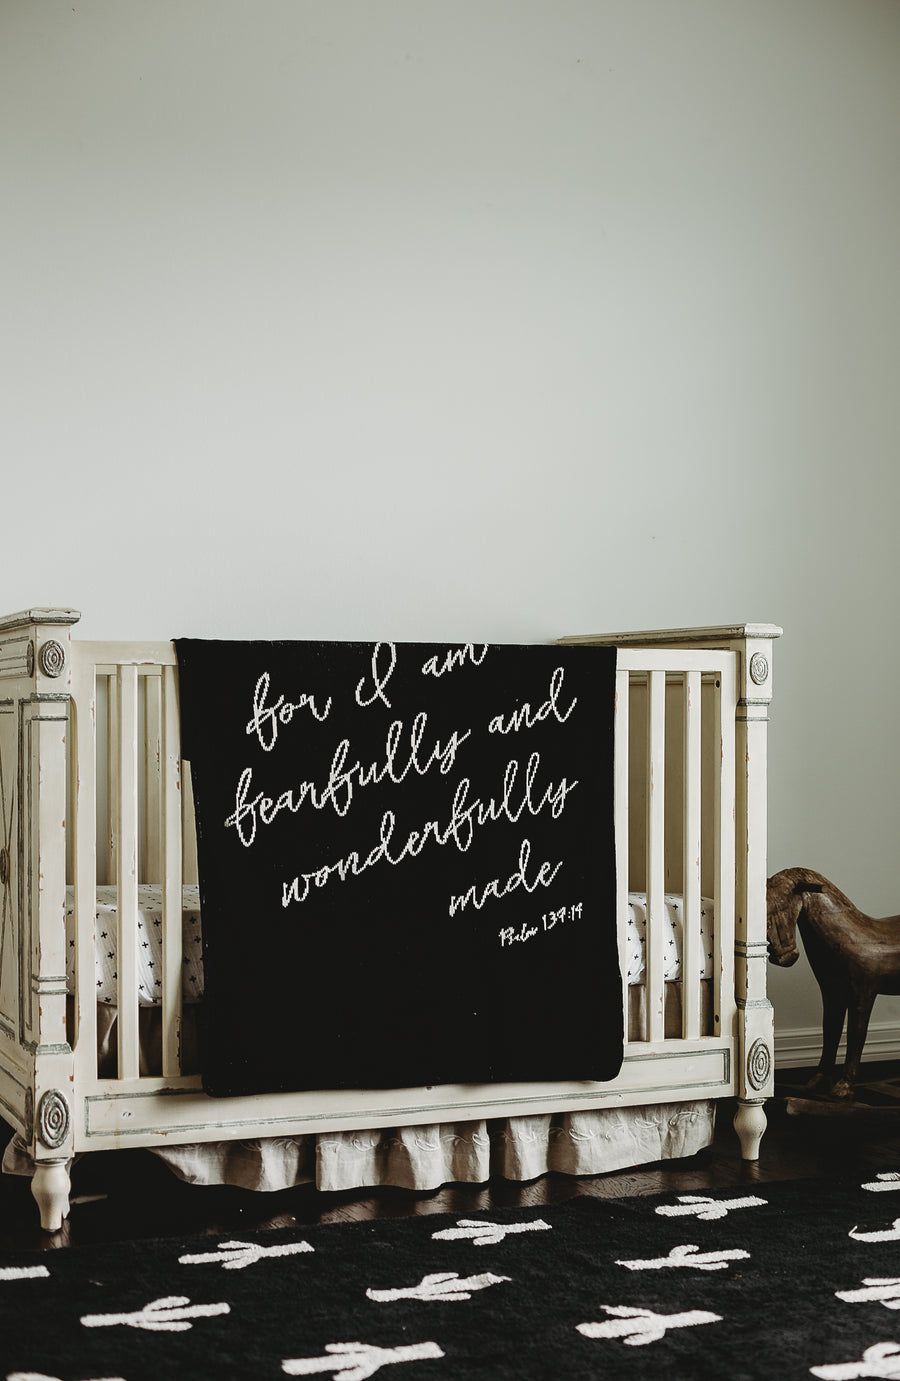 *NEW* Made in the USA | Recycled Cotton Blend  Fearfully and Wonderfully Made Throw Blanket | Black